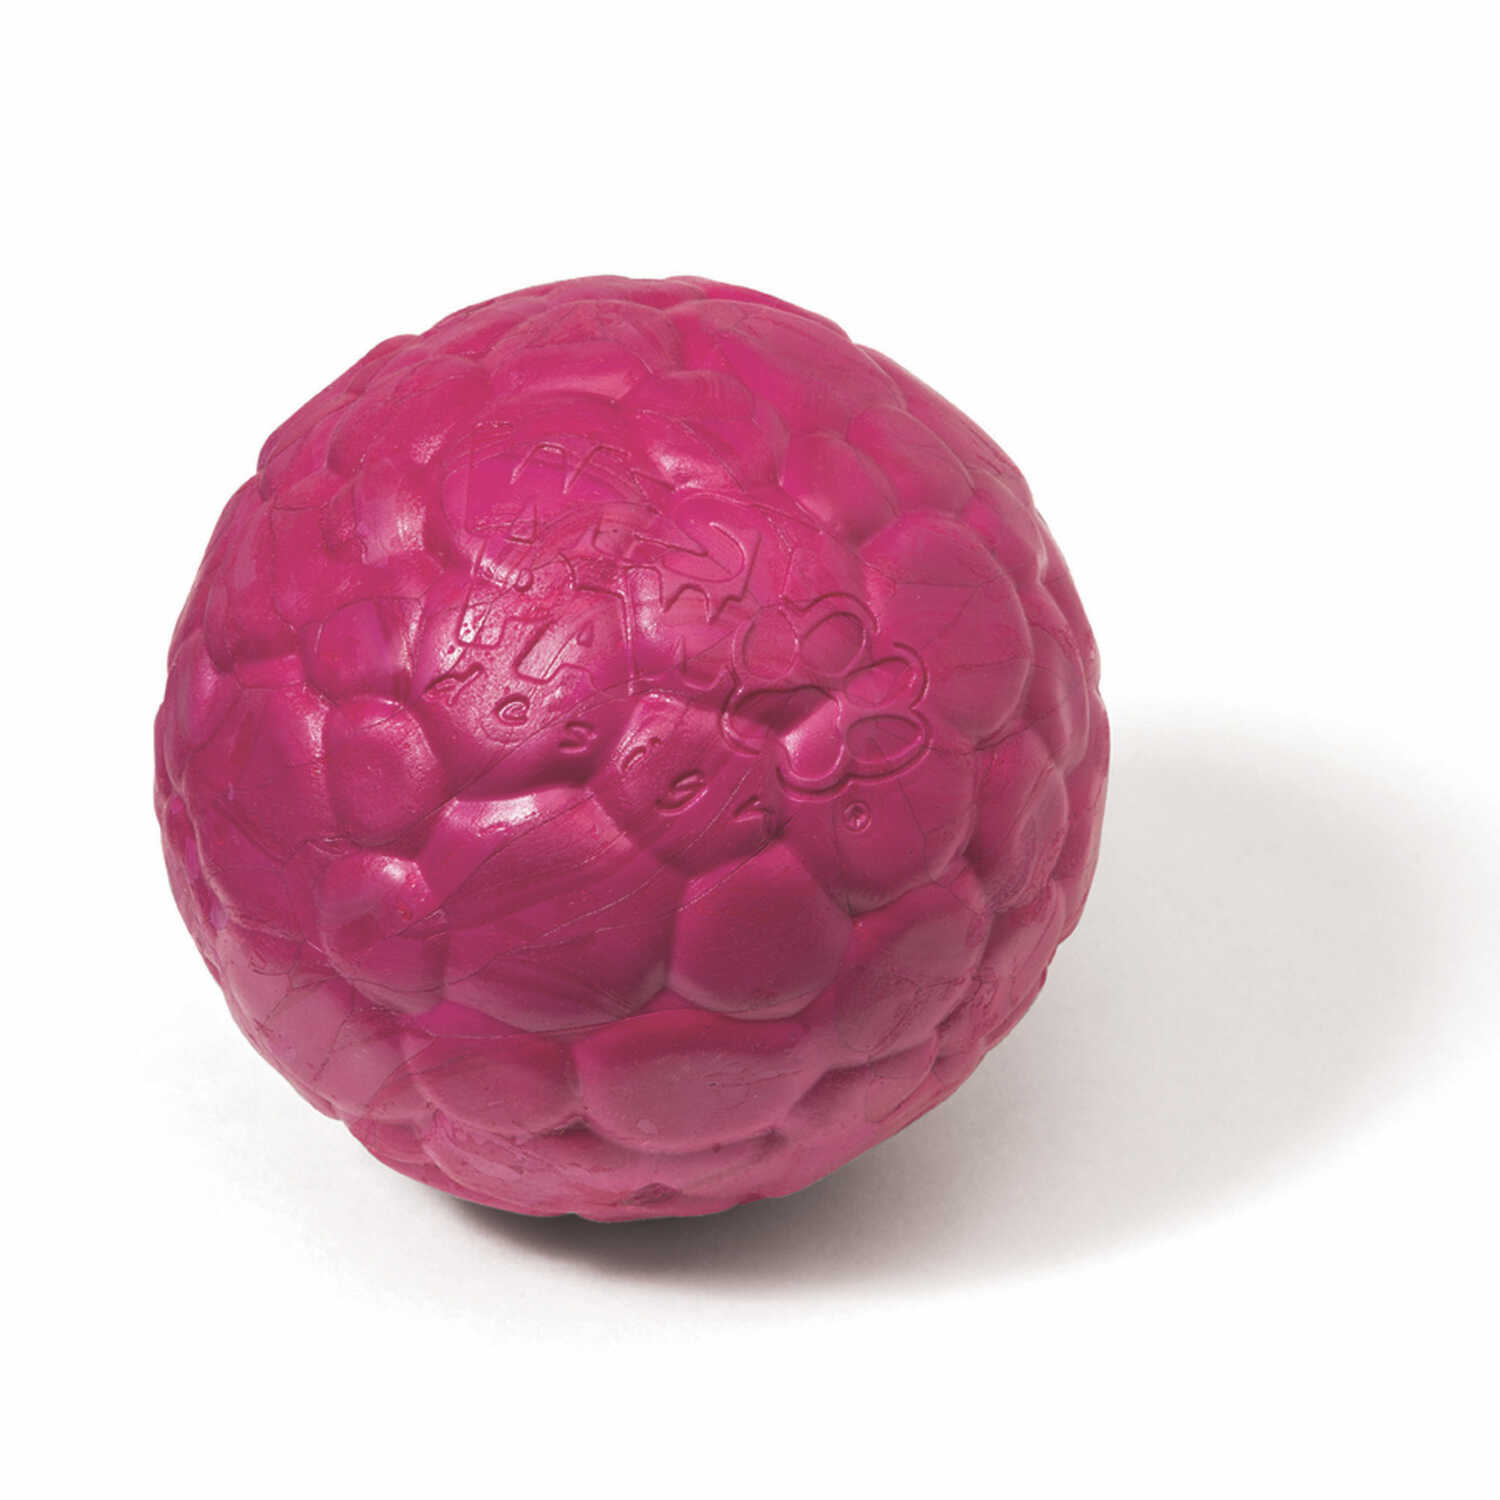 West Paw  Zogoflex Air  Pink  Boz  Synthetic Rubber  Ball Dog Toy  Medium